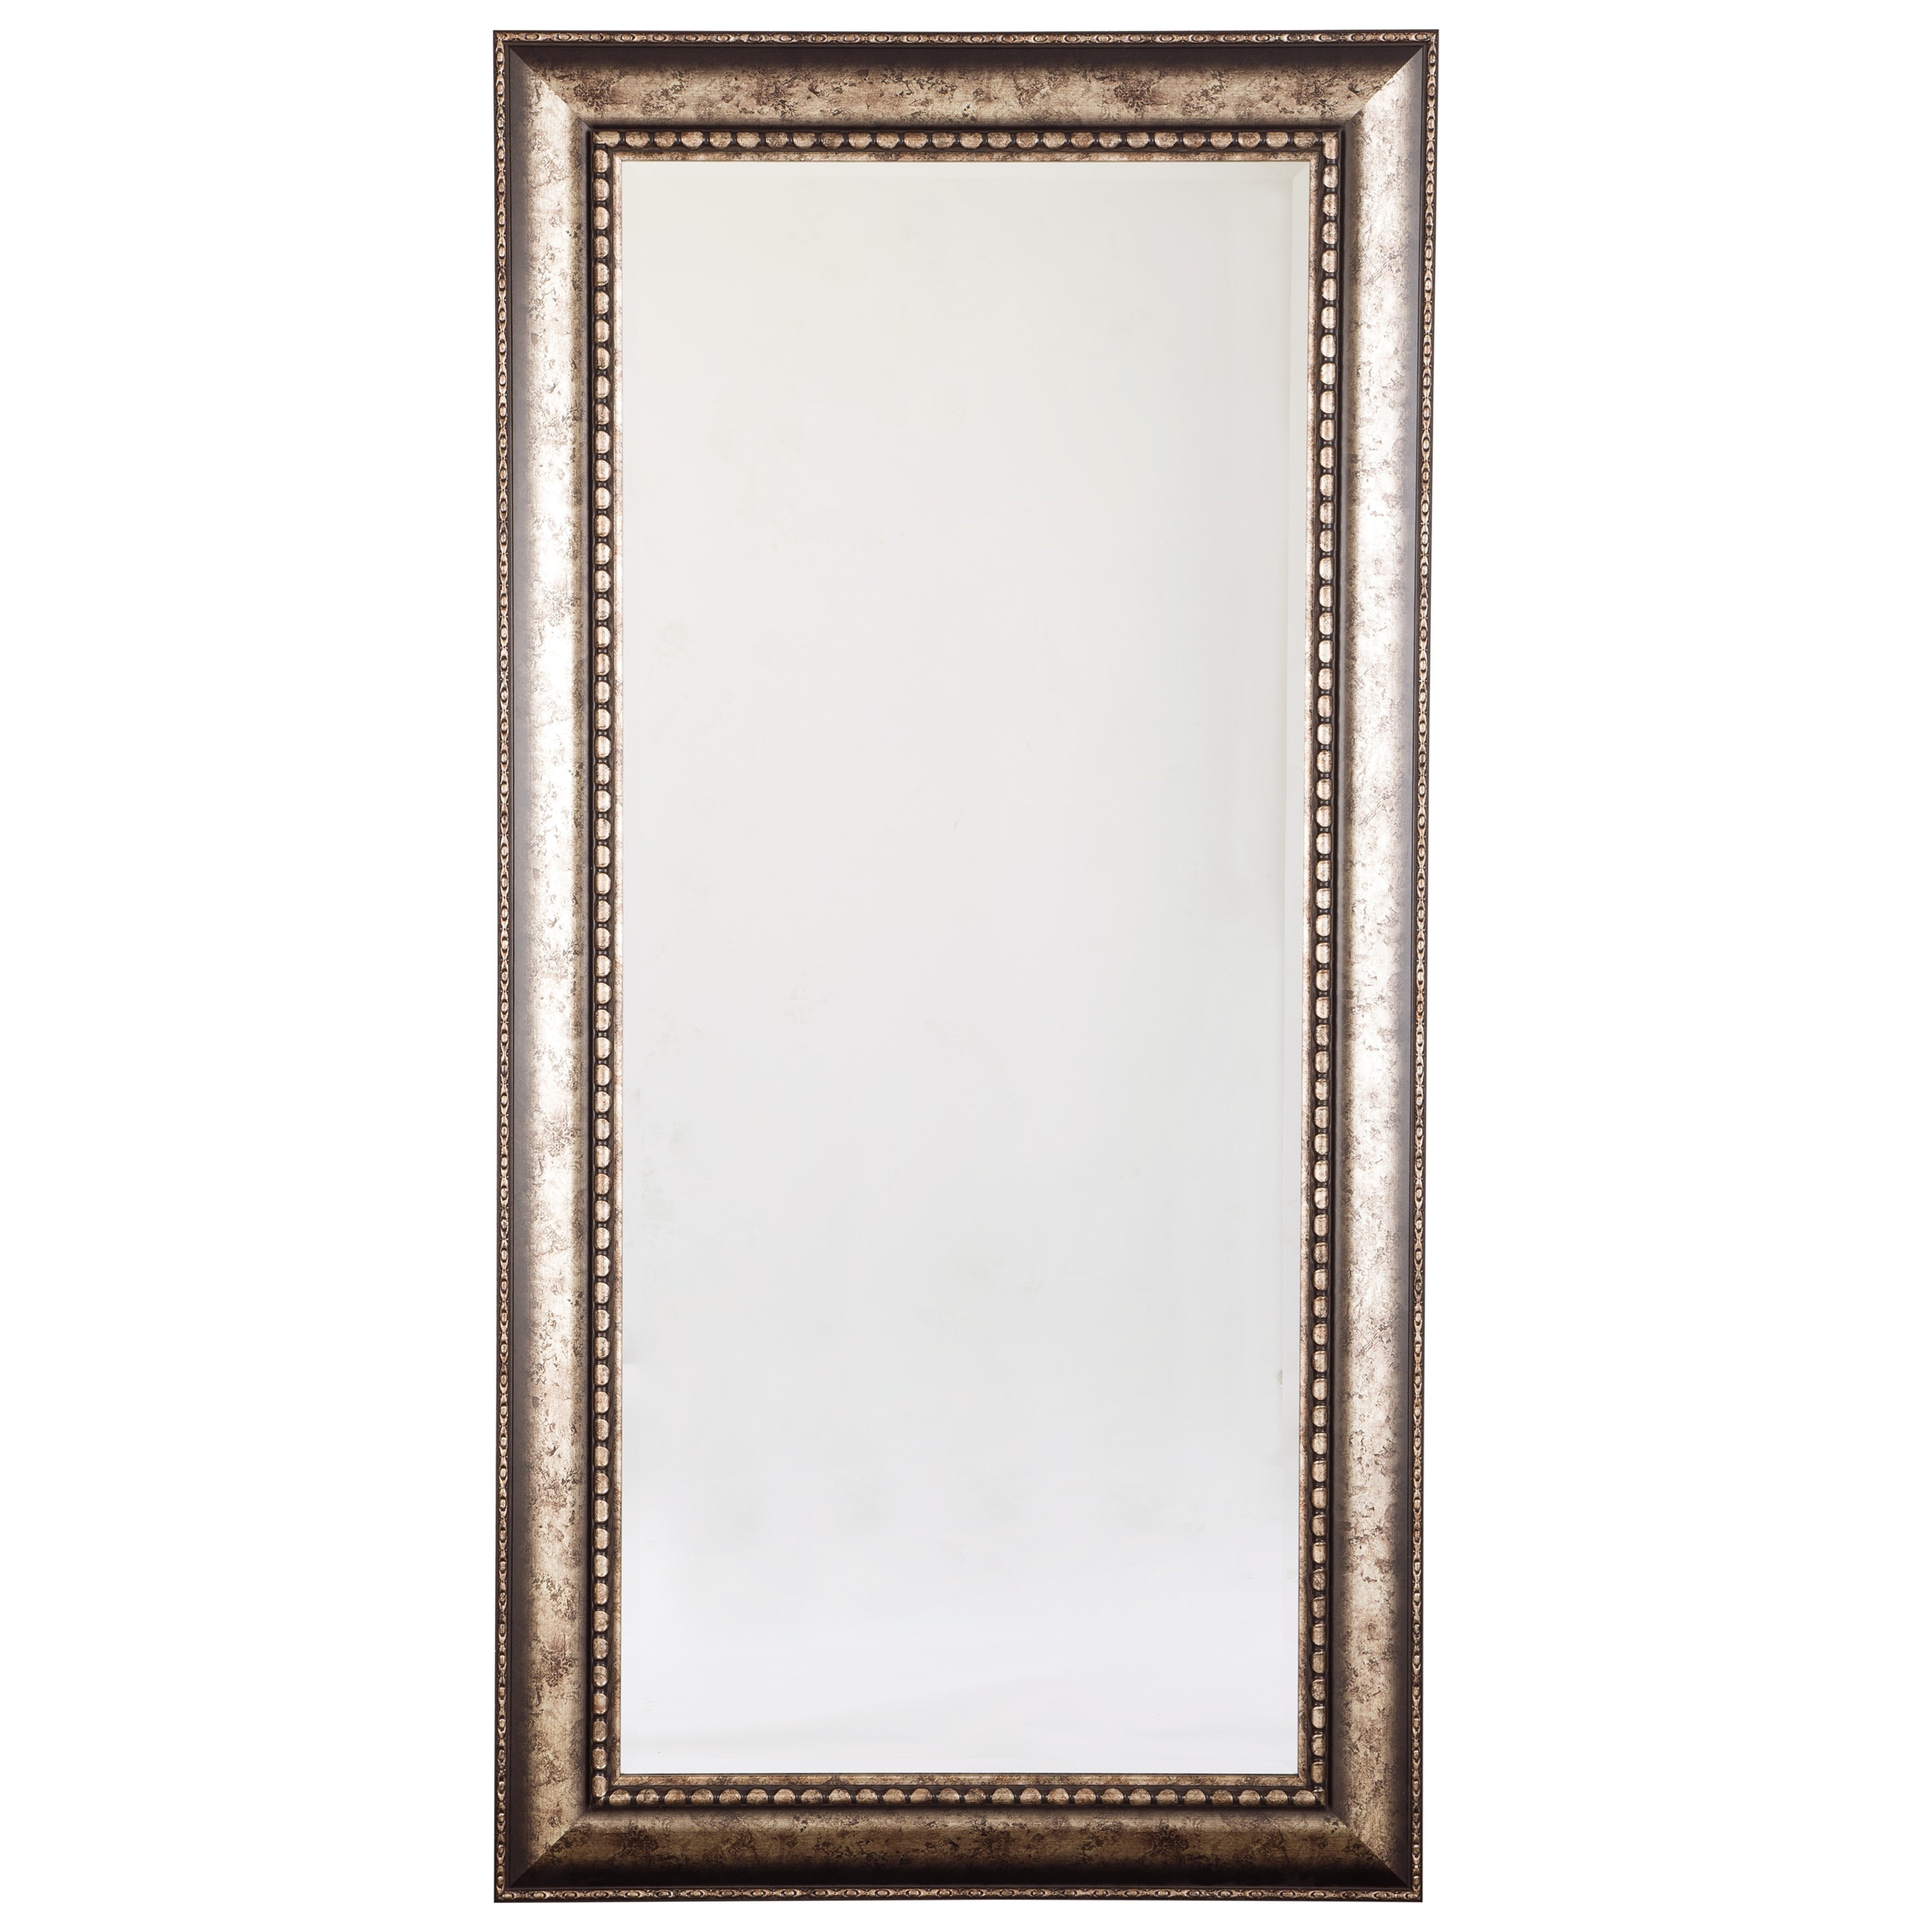 Accent Mirrors Dulal Antique Silver Finish Accent Mirror by Ashley Furniture Signature Design at Del Sol Furniture